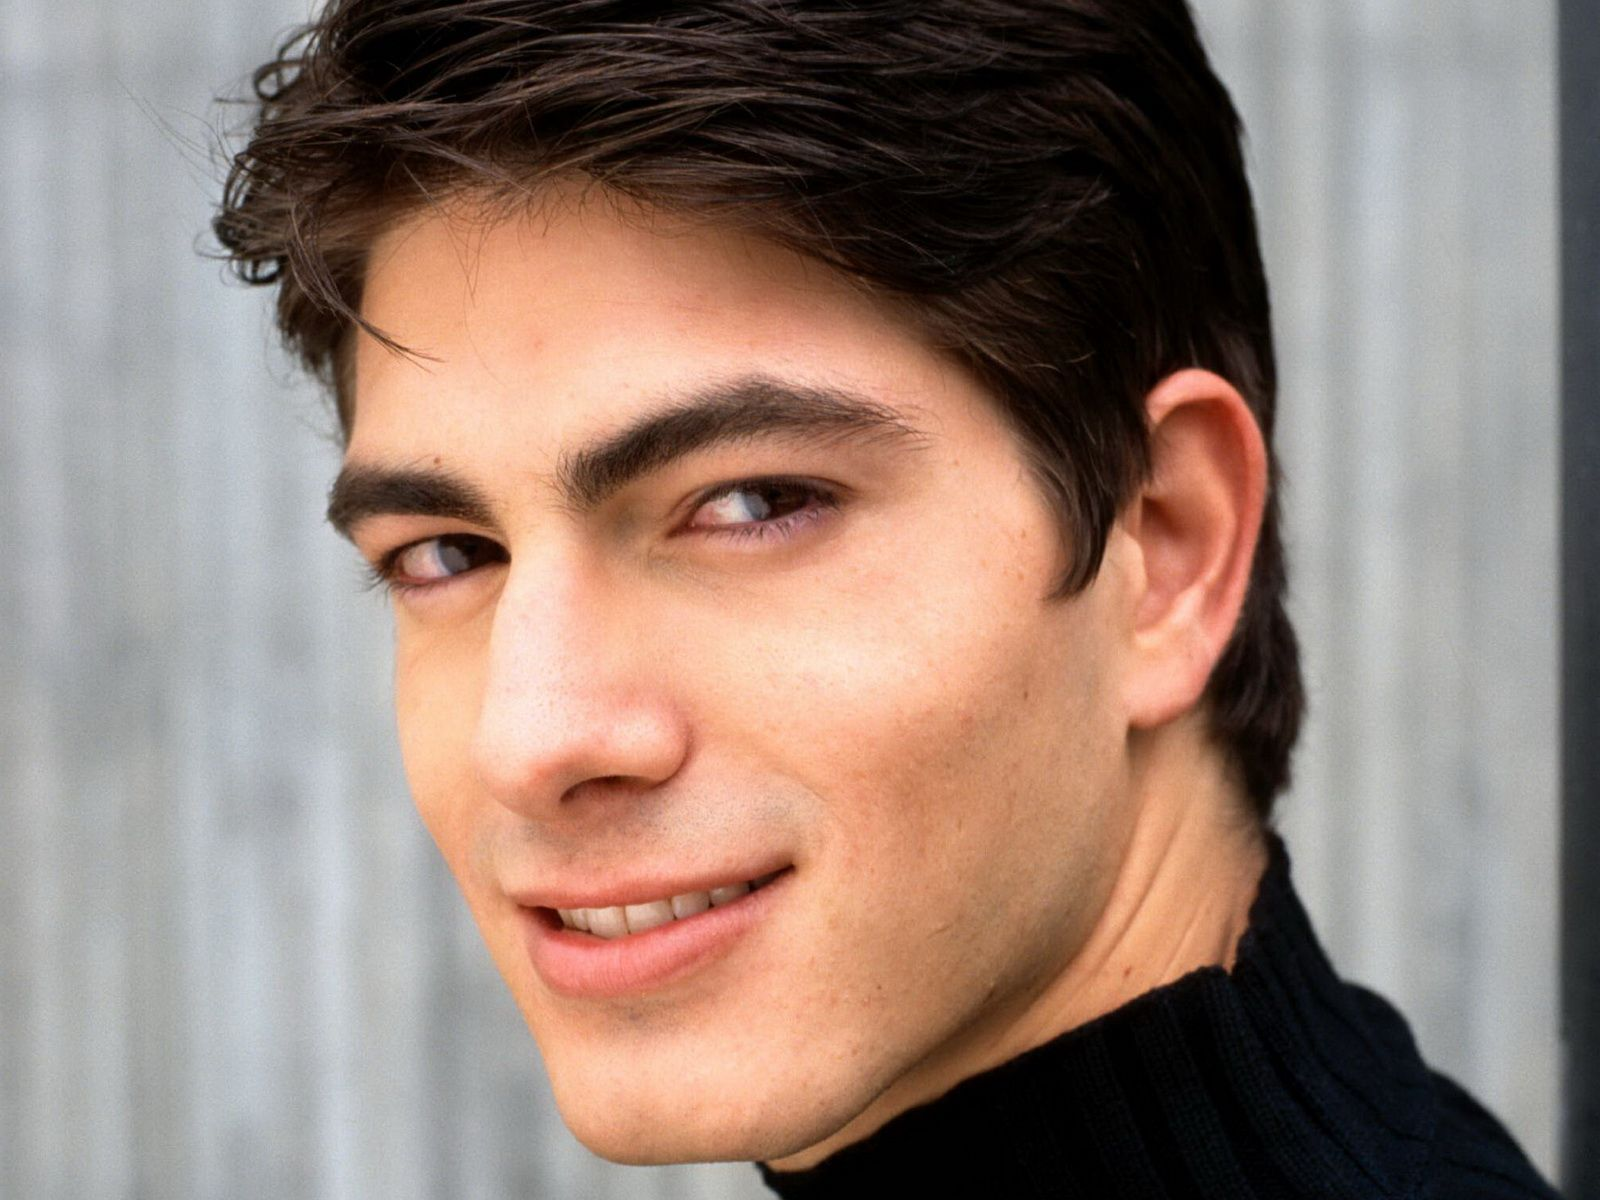 brandon routh vs henry cavillbrandon routh wiki, brandon routh and david giuntoli, brandon routh underwear, brandon routh and his wife, brandon routh imdb, brandon routh x reader, brandon routh superman, brandon routh instagram, brandon routh height, brandon routh scott pilgrim, brandon routh wow, brandon routh singing, brandon routh, brandon routh arrow, brandon routh wife, brandon routh vs henry cavill, brandon routh movies, brandon routh and courtney ford, brandon routh twitter, brandon routh chuck